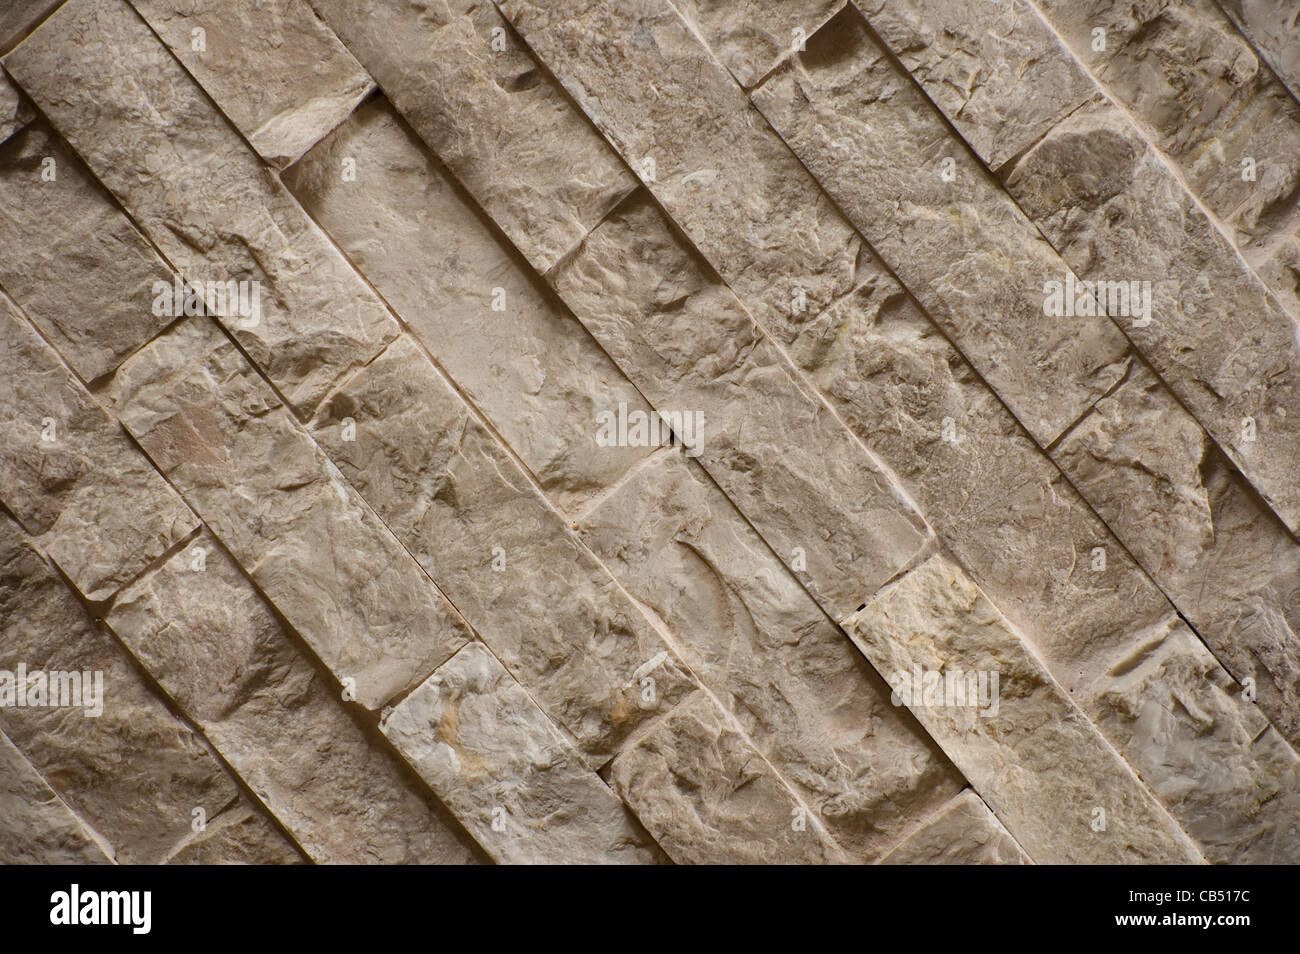 Stonewall abstract background Photo Stock